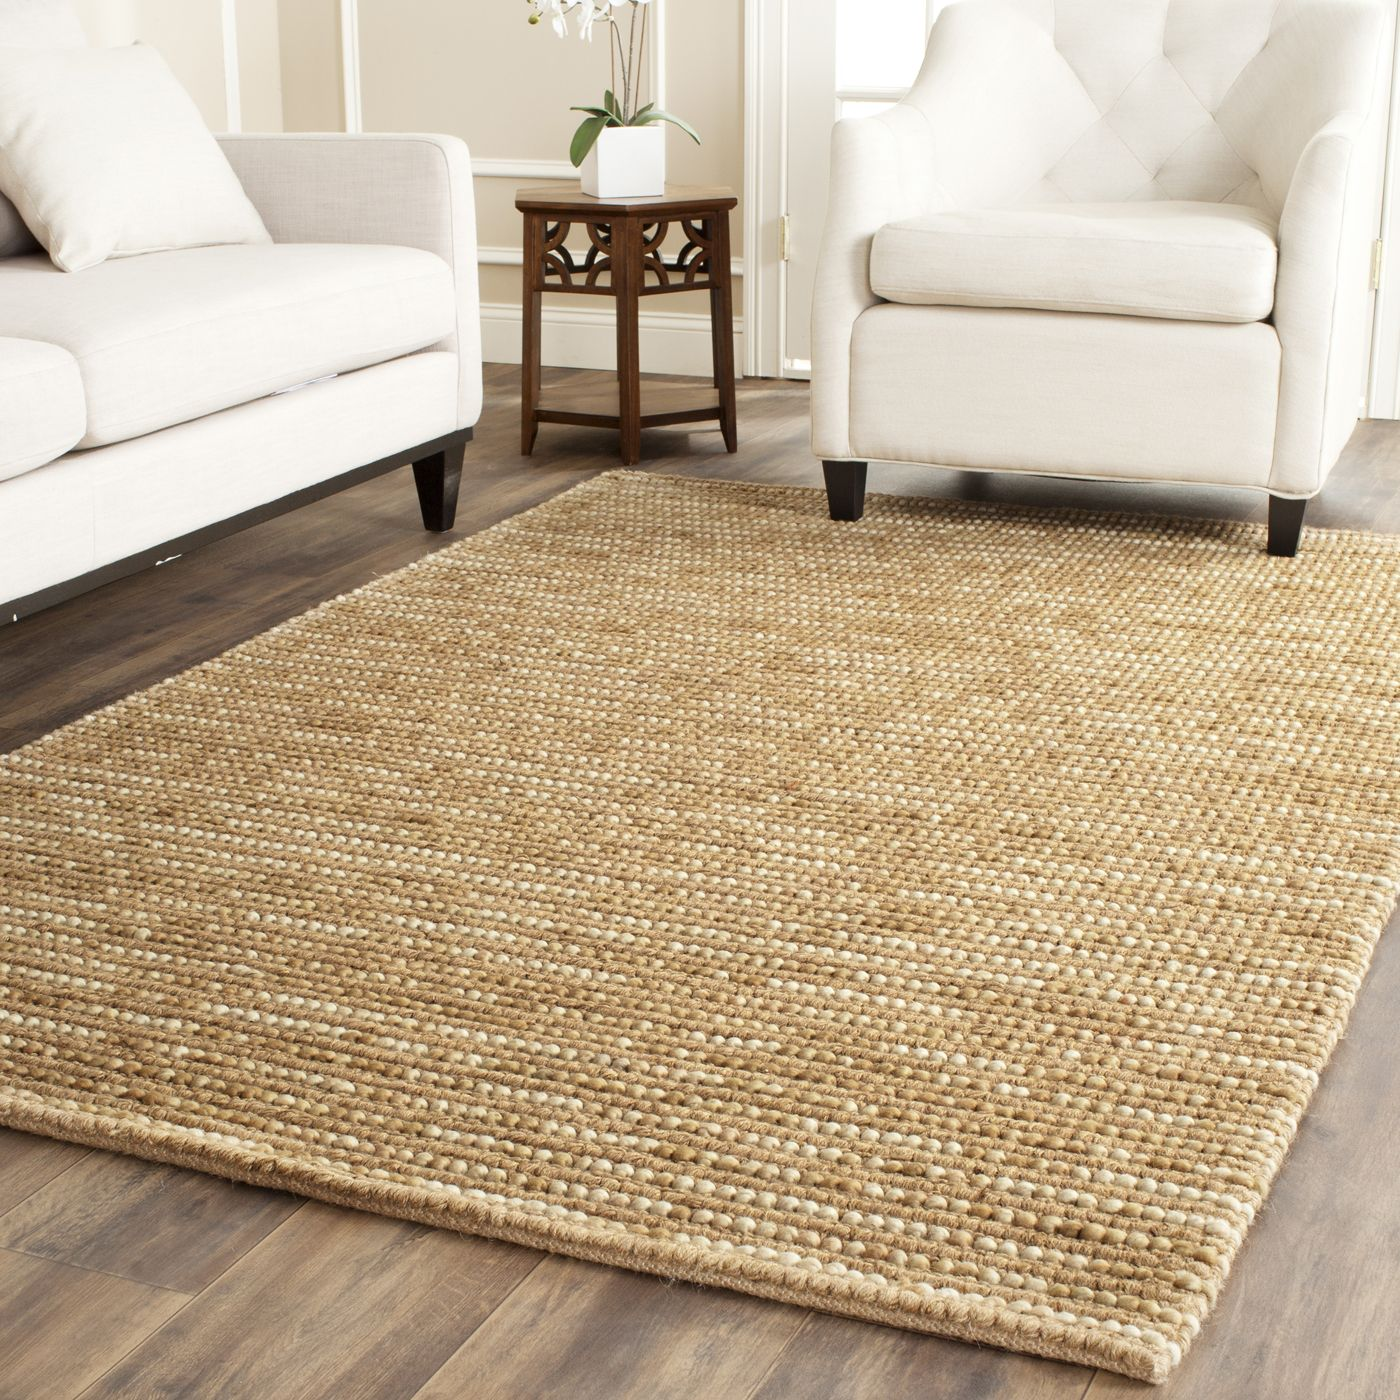 Safavieh Boh525f Bohemian Area Rug Beige Multi At Lowe S Canada Find Our Selection Of Rugs The Lowest Price Guaranteed With Match